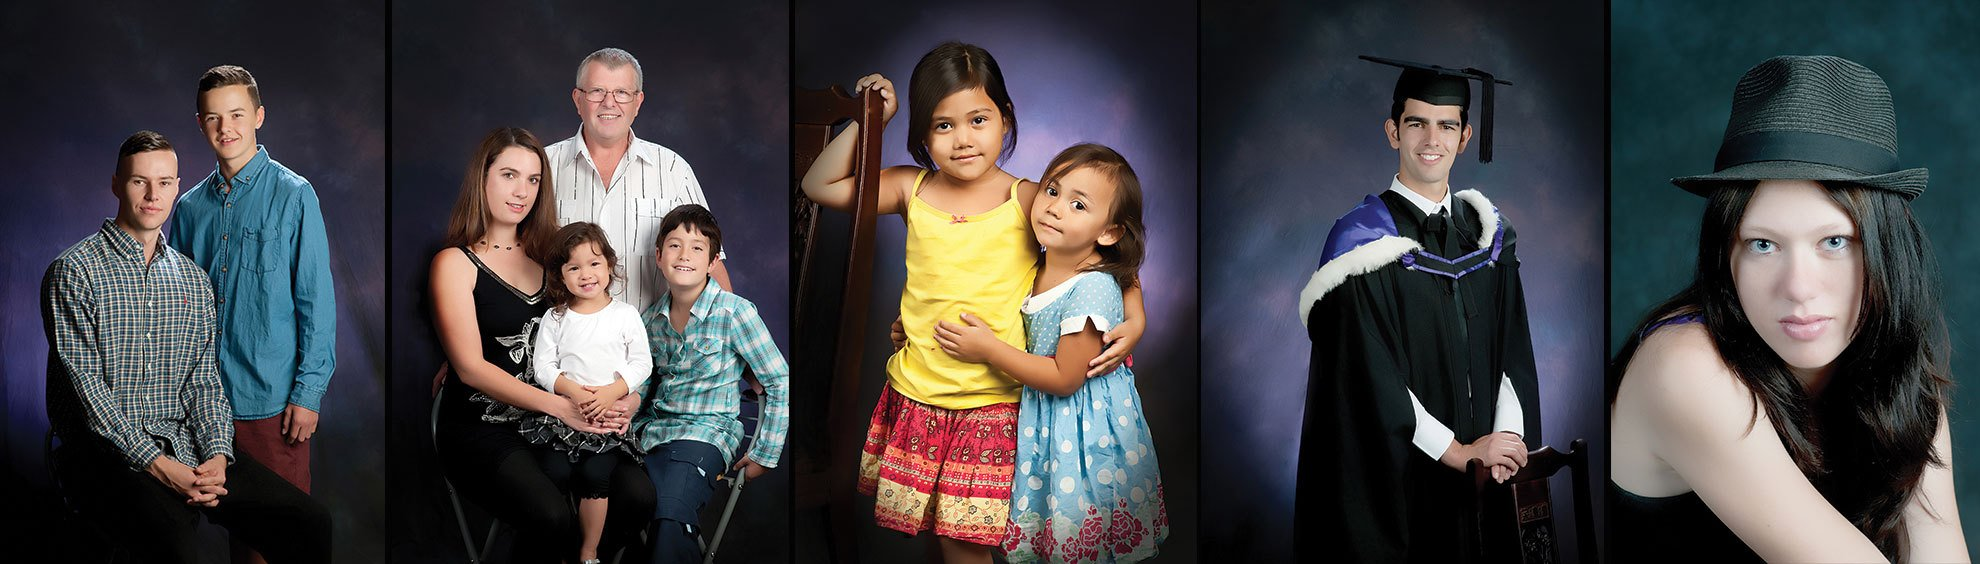 Keep your photo safe with our expert photographic service